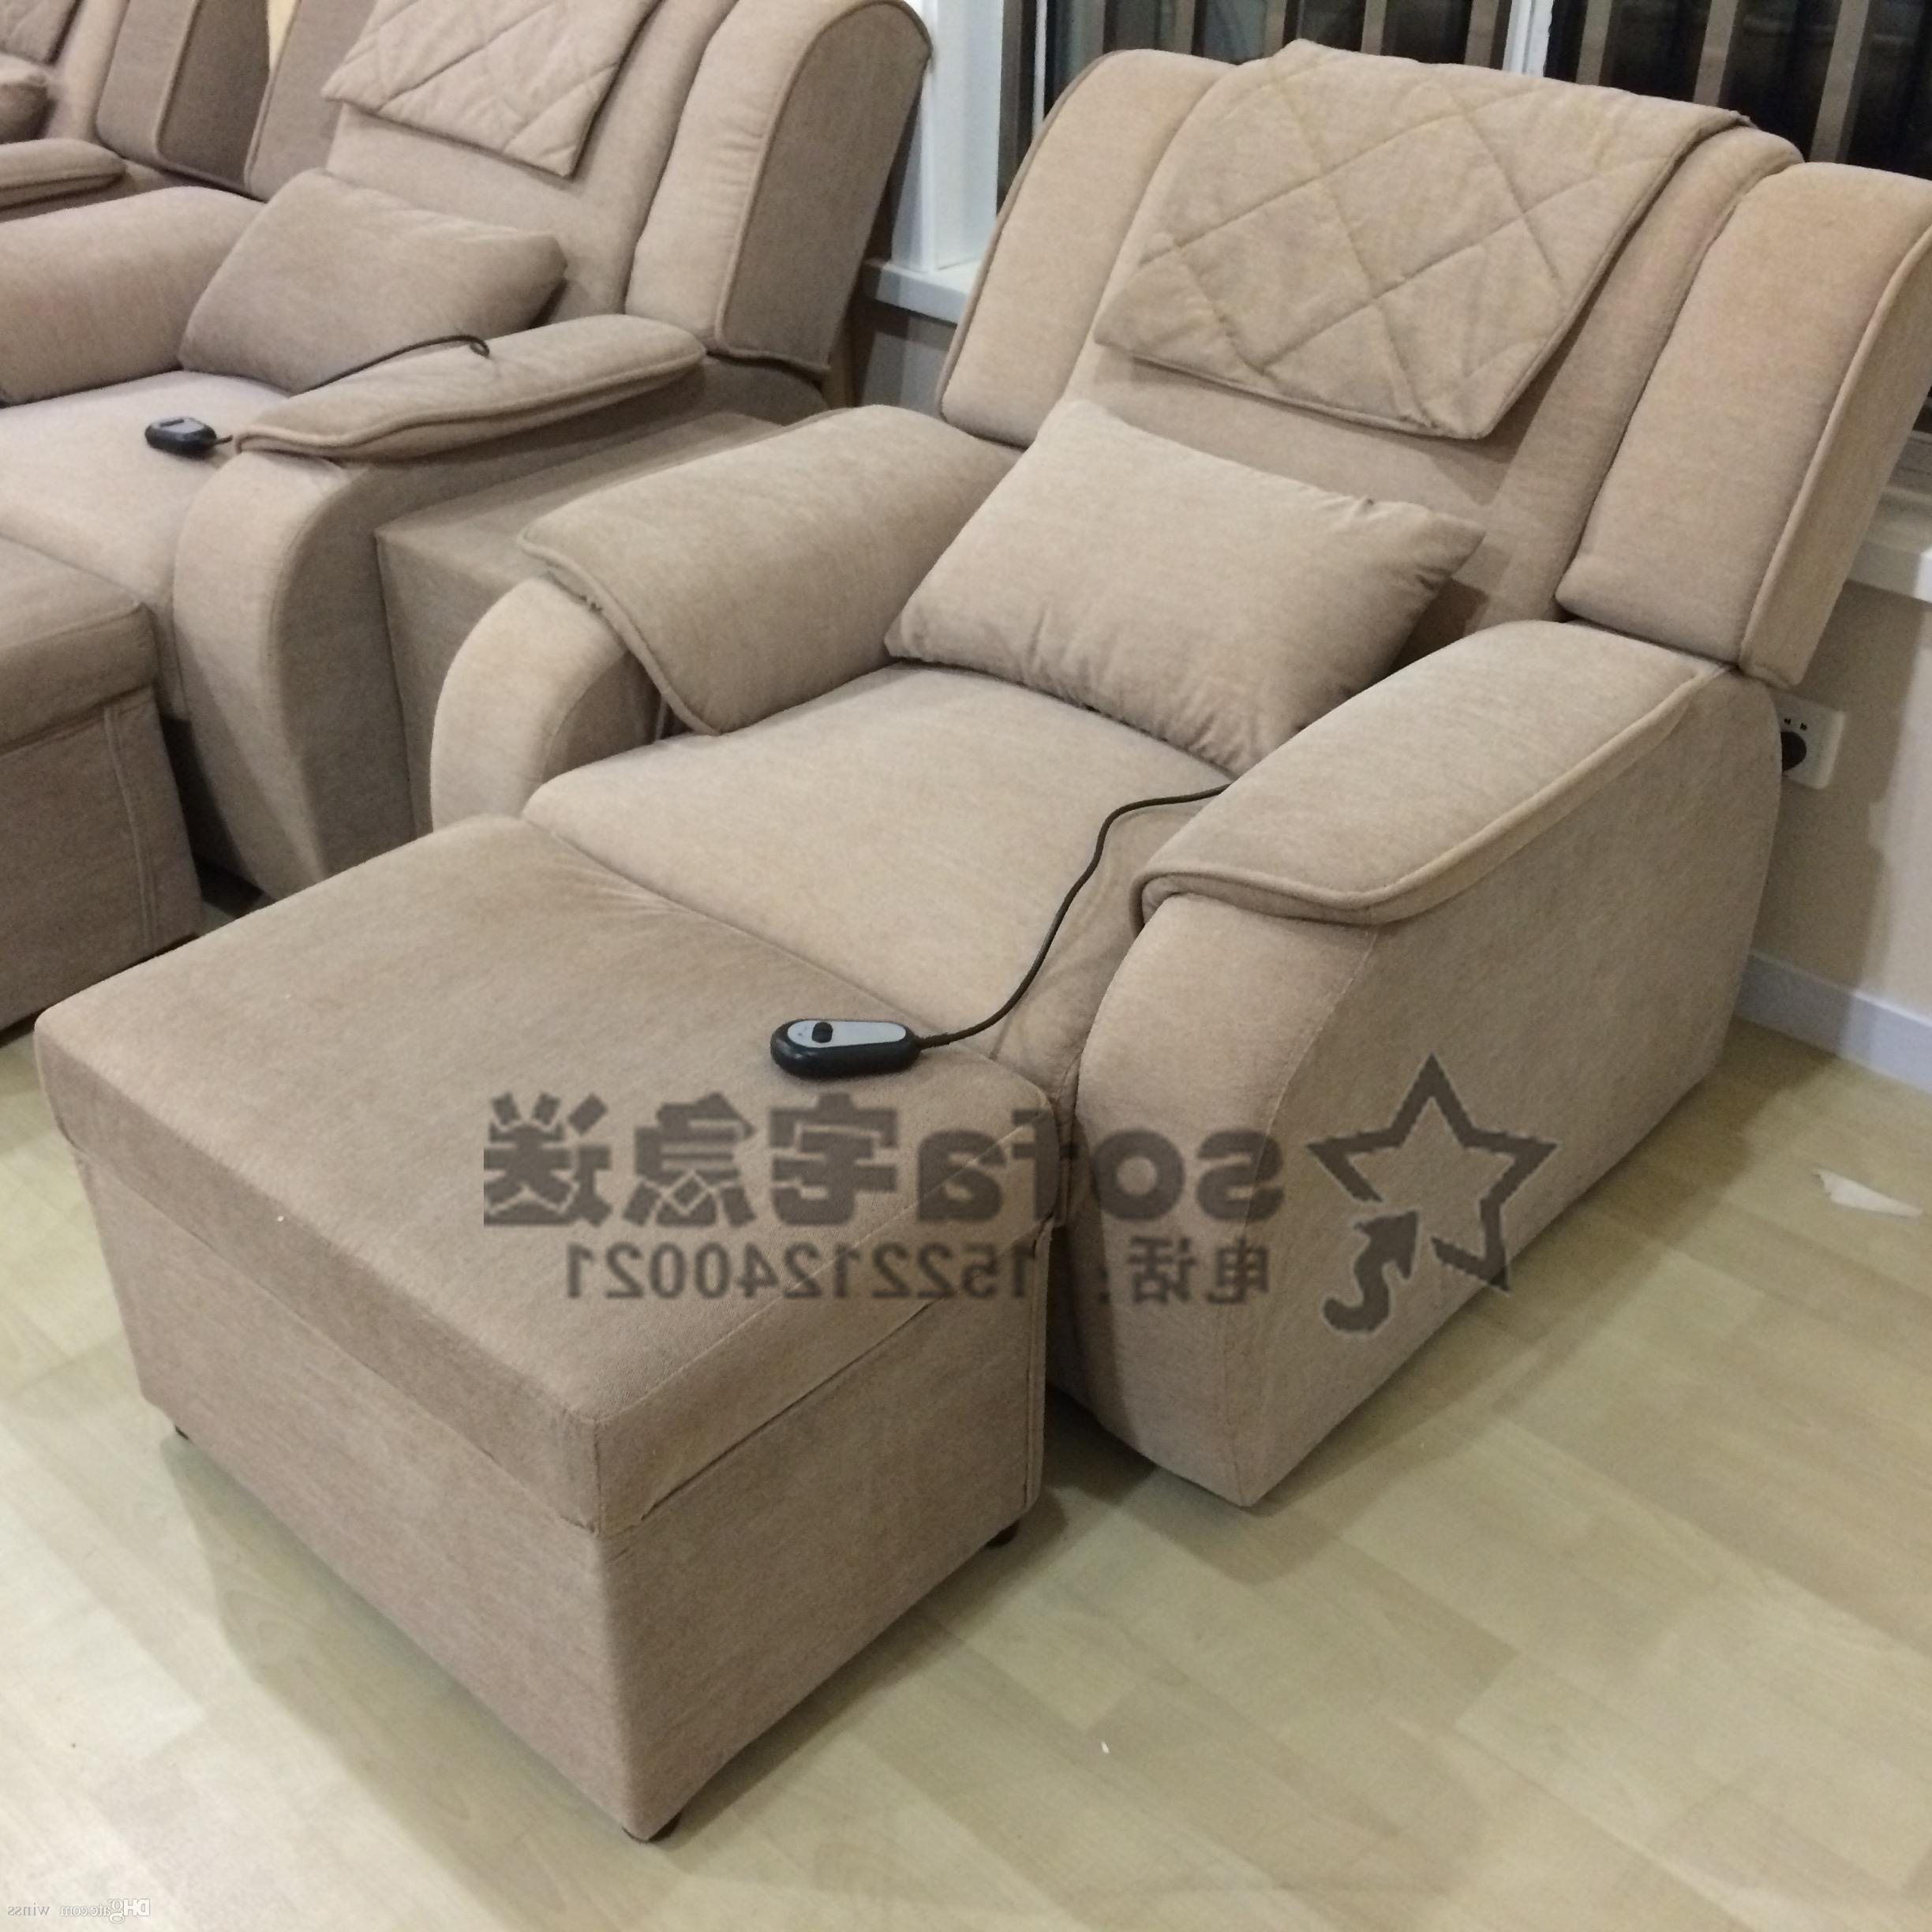 Foot Massage Sofa Chairs With Regard To Recent Easylovely Foot Massage Chair In Modern Home Decoration Idea C (View 3 of 20)